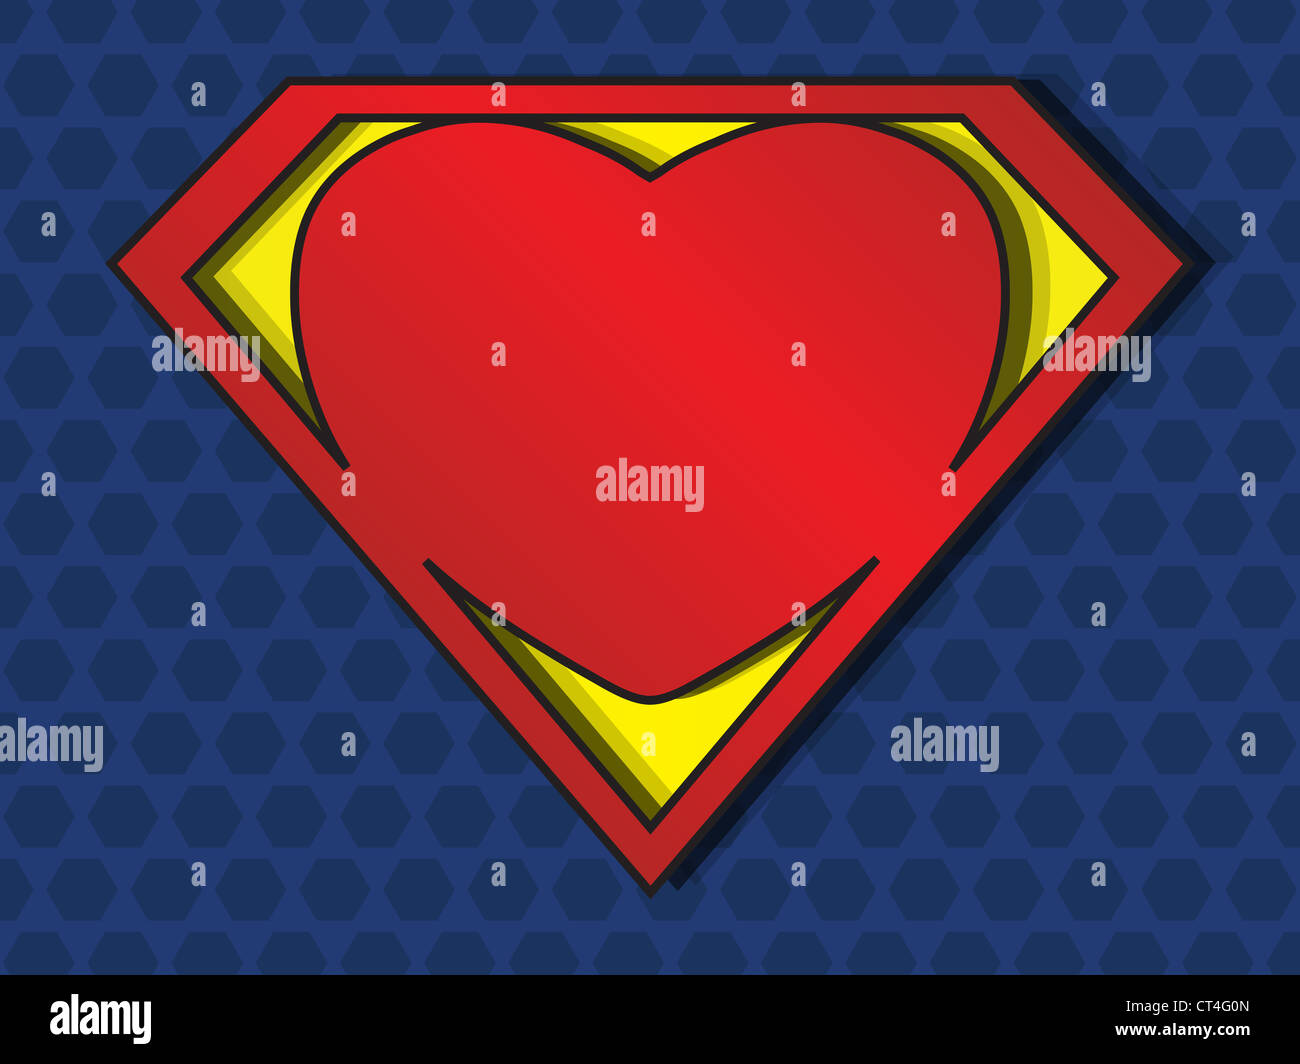 a big red heart shaped like a superhero shield, symbol for strong love - Stock Image